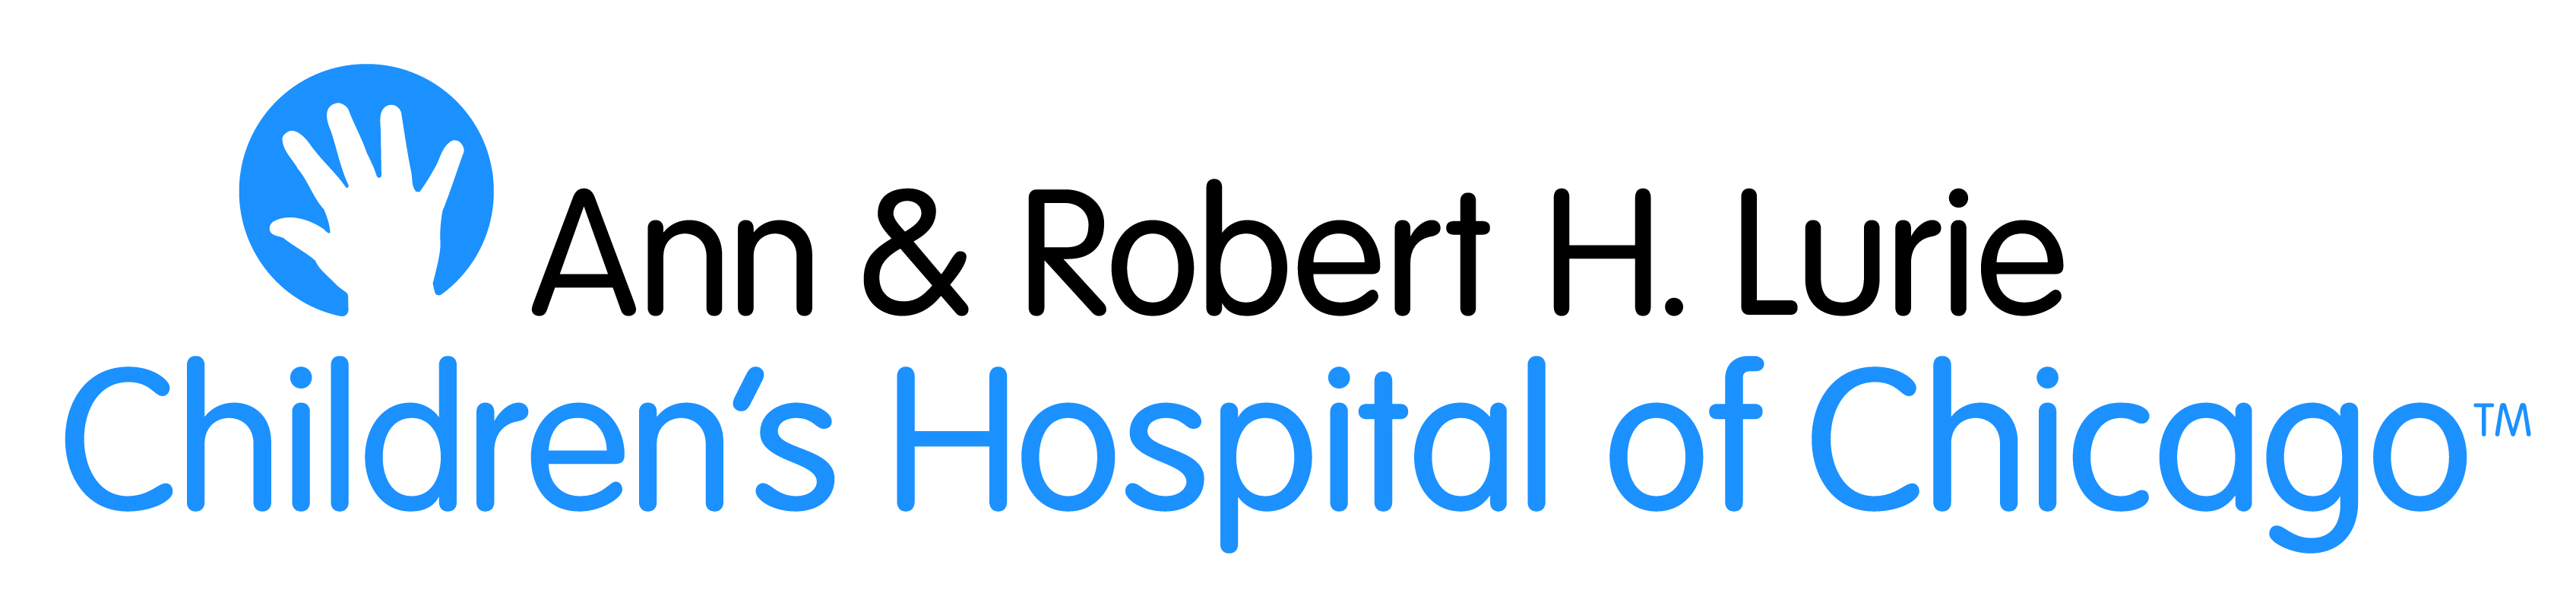 Ann & Robert H. Lurie Children's Memorial Hospital of Chicago Logo